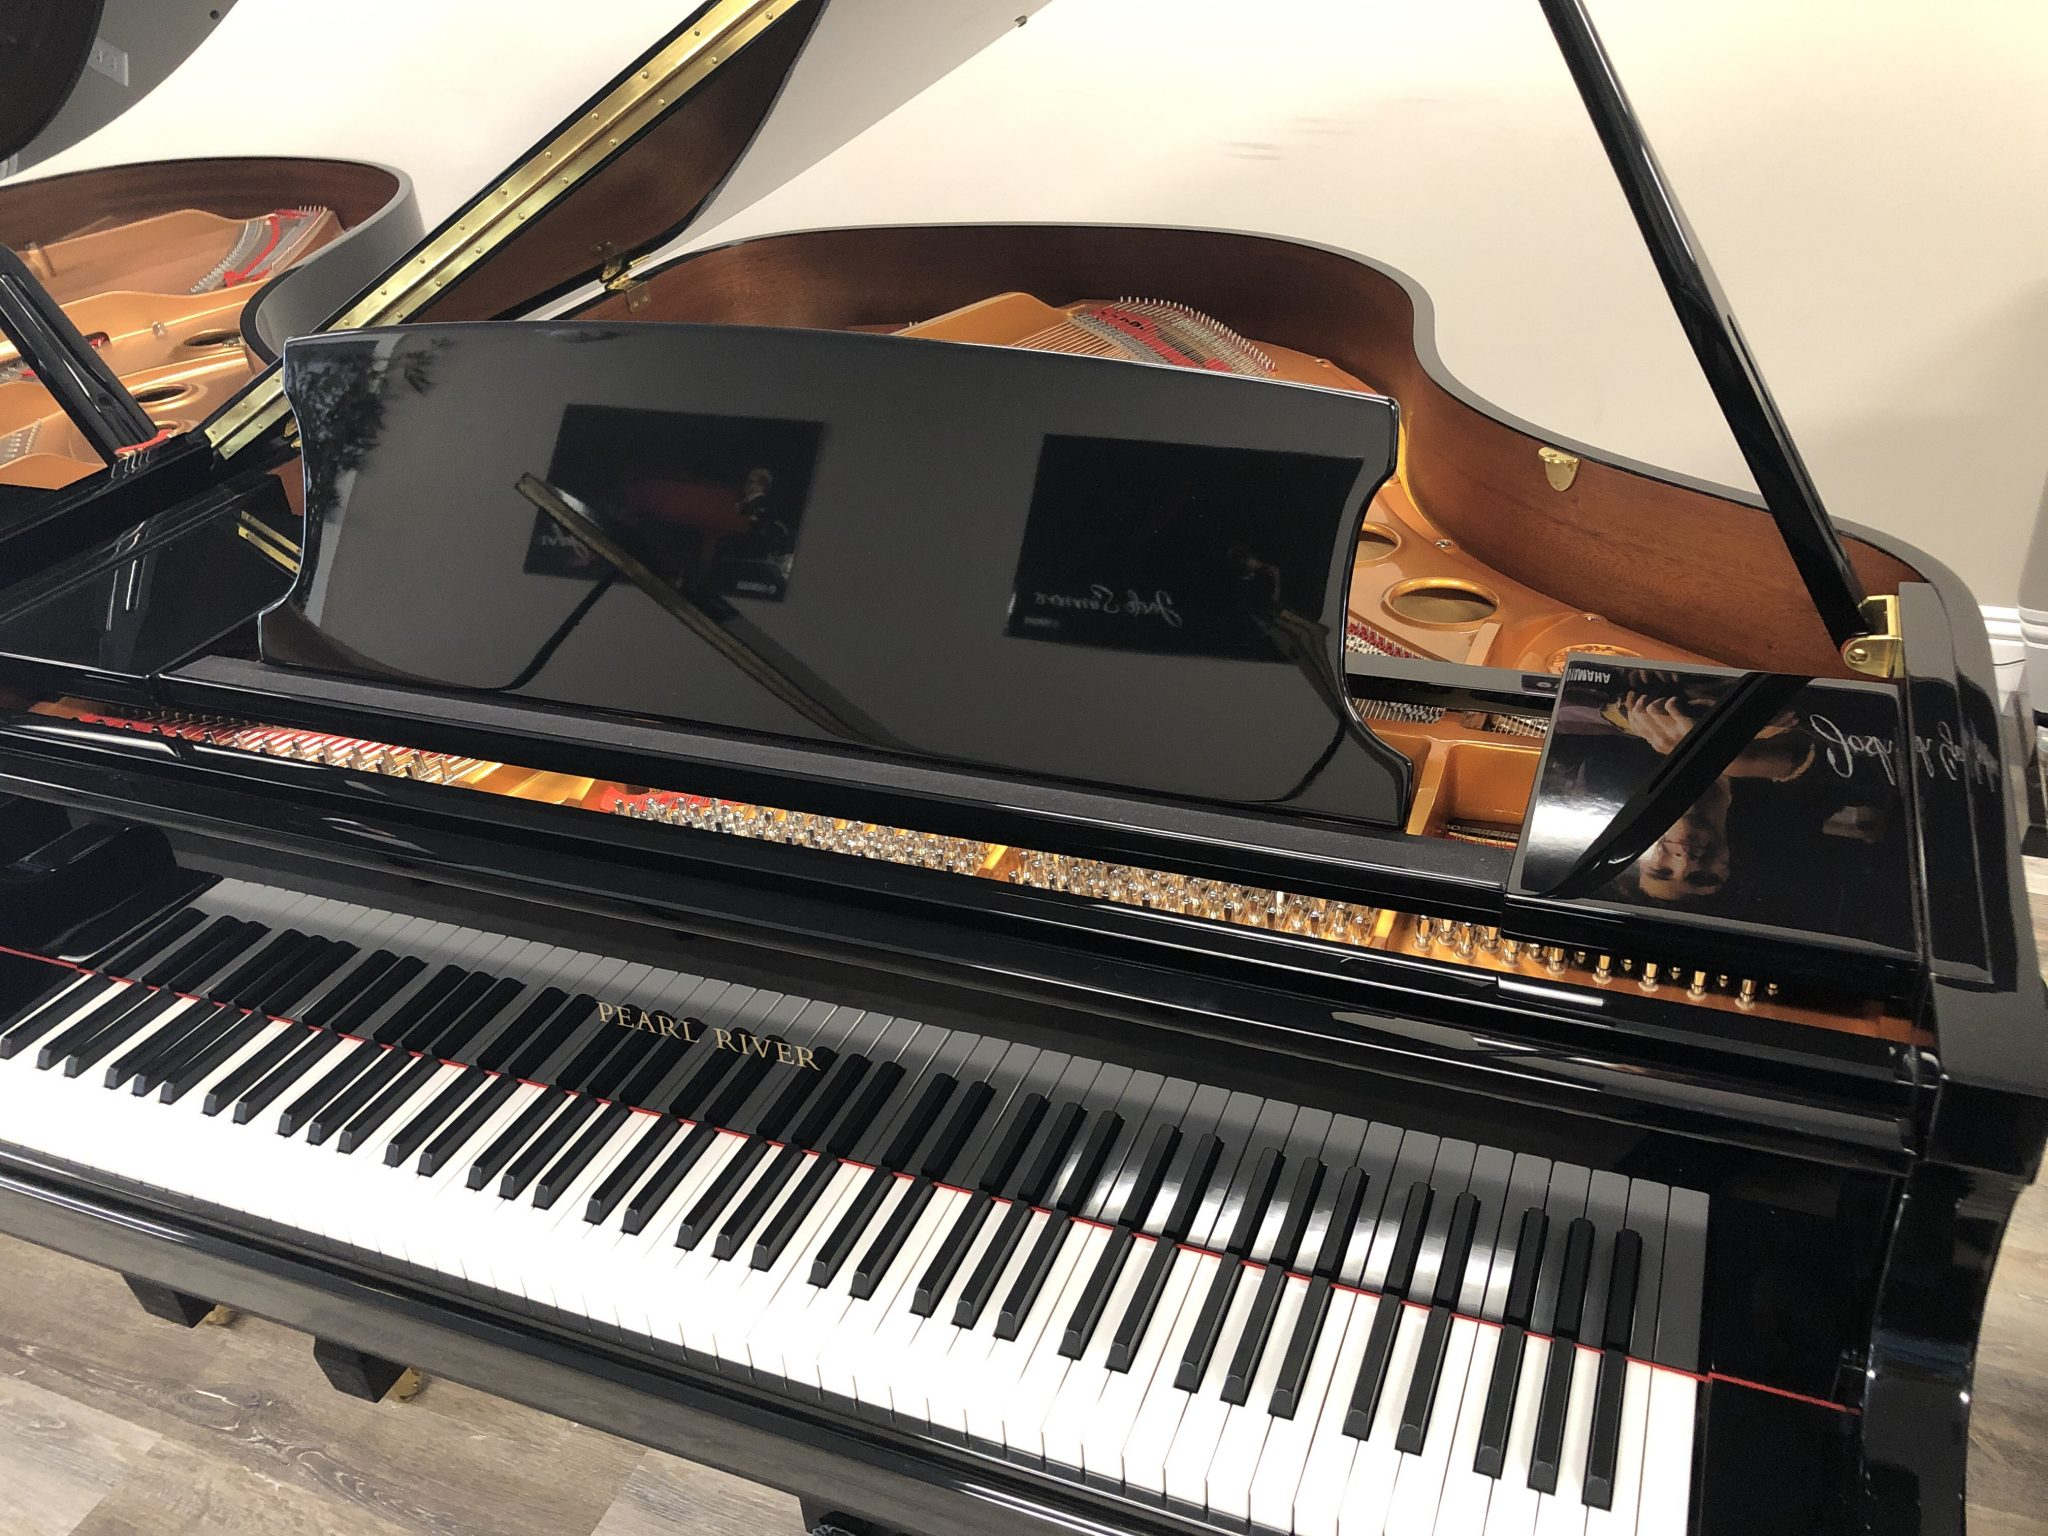 Included is a QRSMusic Pianomation III player system controlled by a wireless WiFi connection. This instrument is 2 years new and a very special buy at $13,900 total!